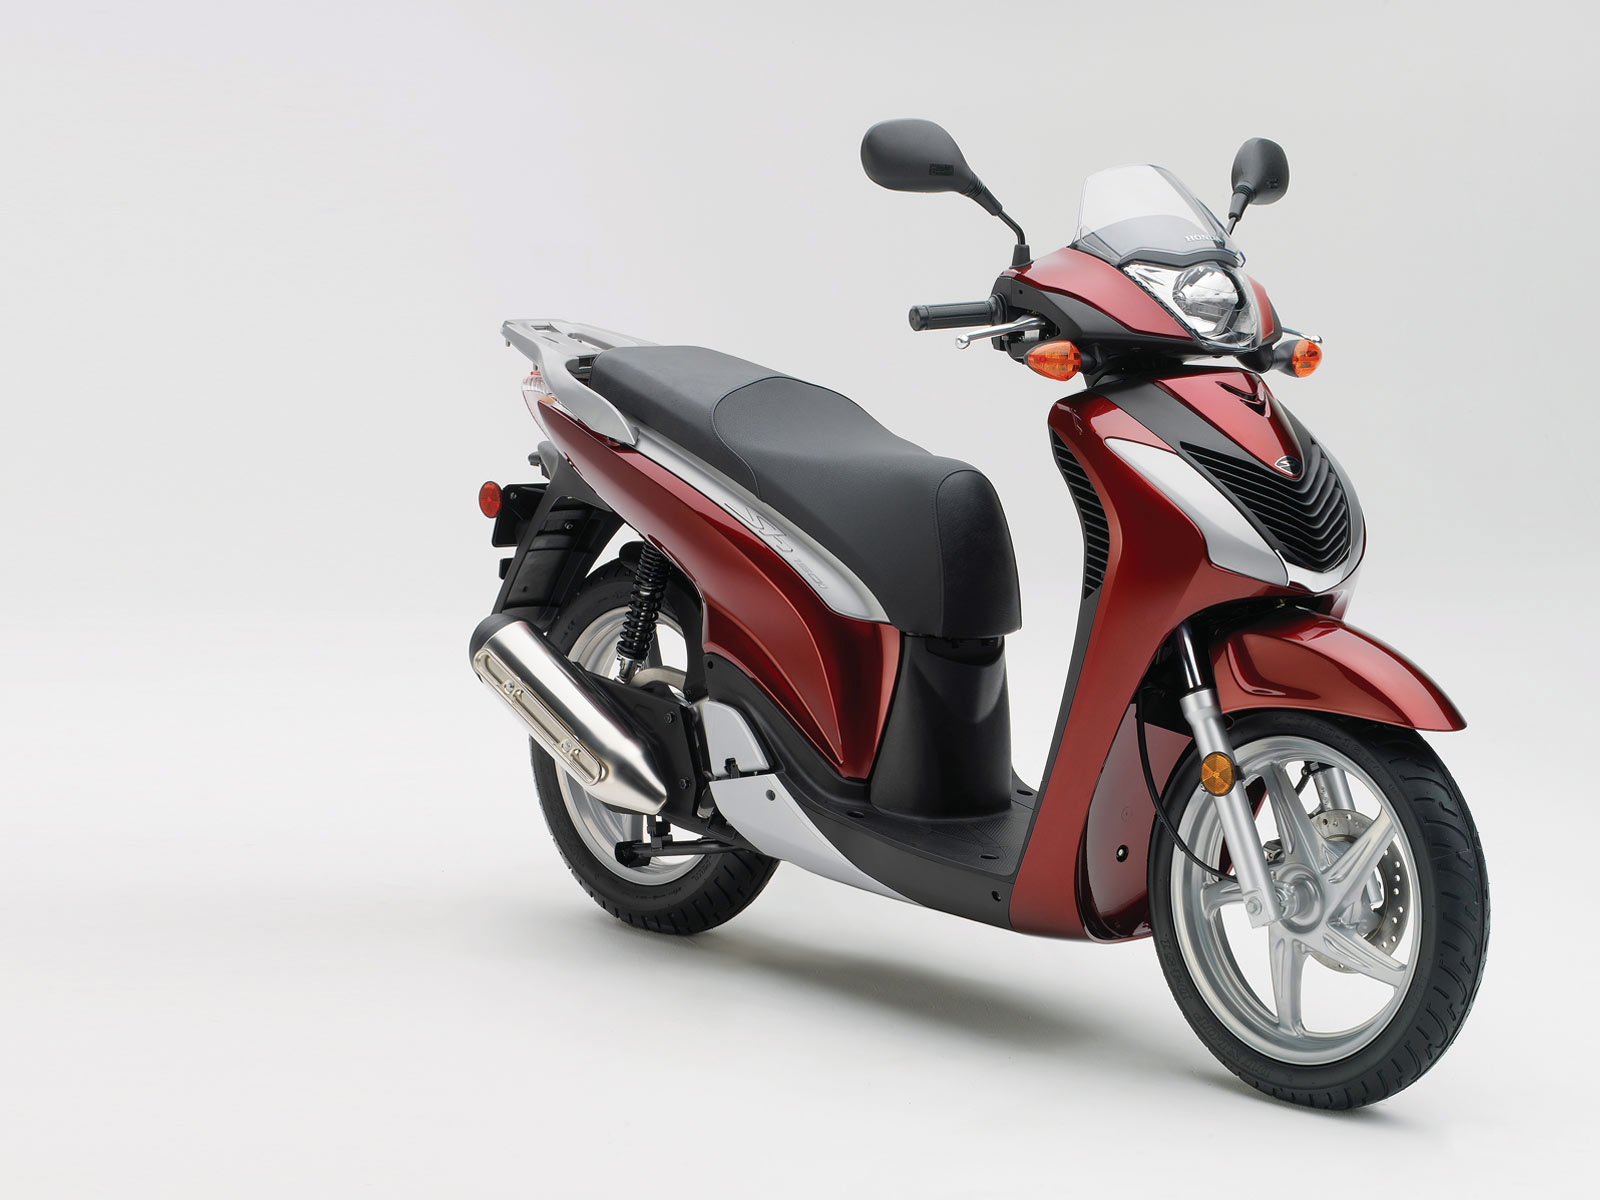 2010 Honda Sh 150i Scooter Insurance Info Pictures